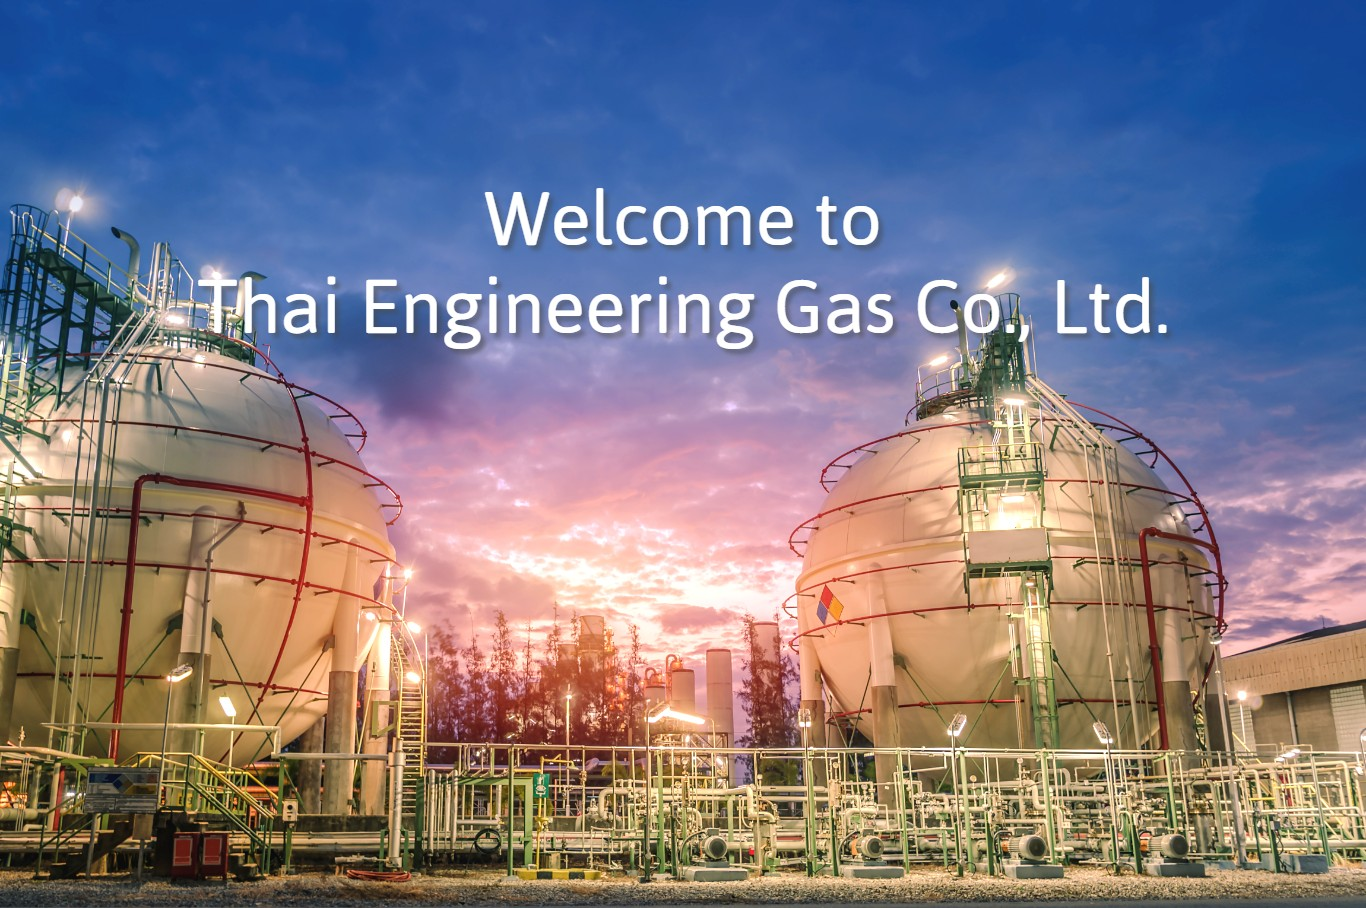 Welcome to Thai Engineering Gas Company Limited. We are gases and chemicals distributor, provide engineering services and solutions